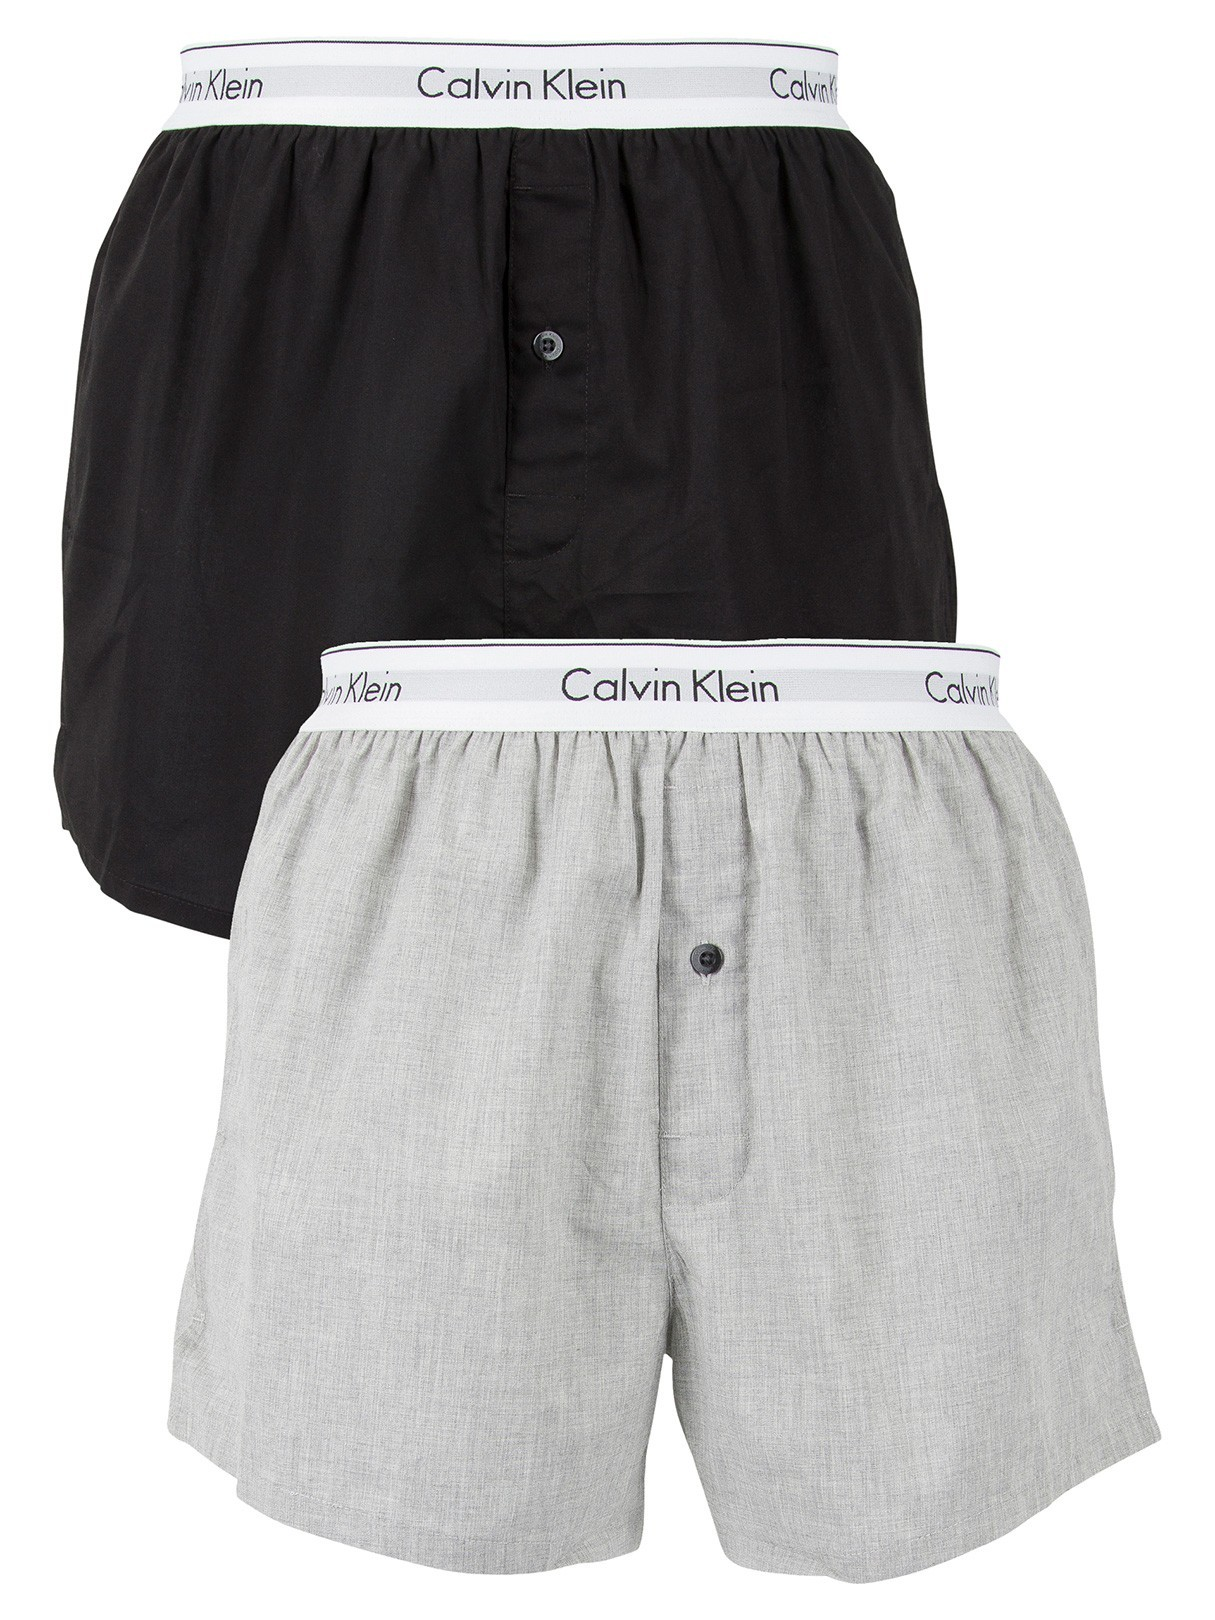 Calvin Klein 2 Pack Logo Slim Fit Woven Boxers - Black/Grey Heather